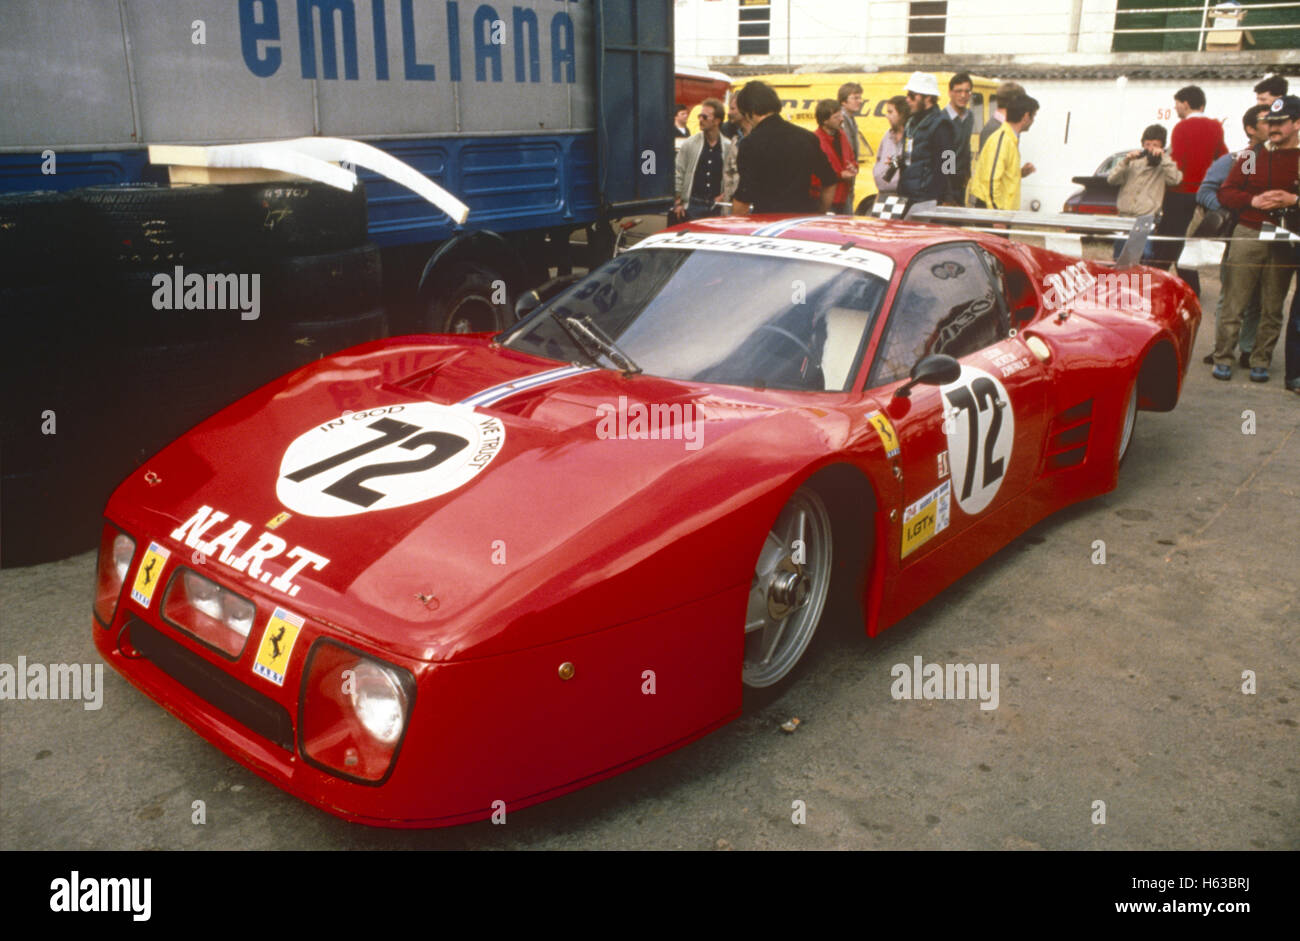 72 Alain Cudini, John Morton, John Paul in a Ferrari 512BB finished 9th at Le Mans 24 Hours 20 June 1982 - Stock Image